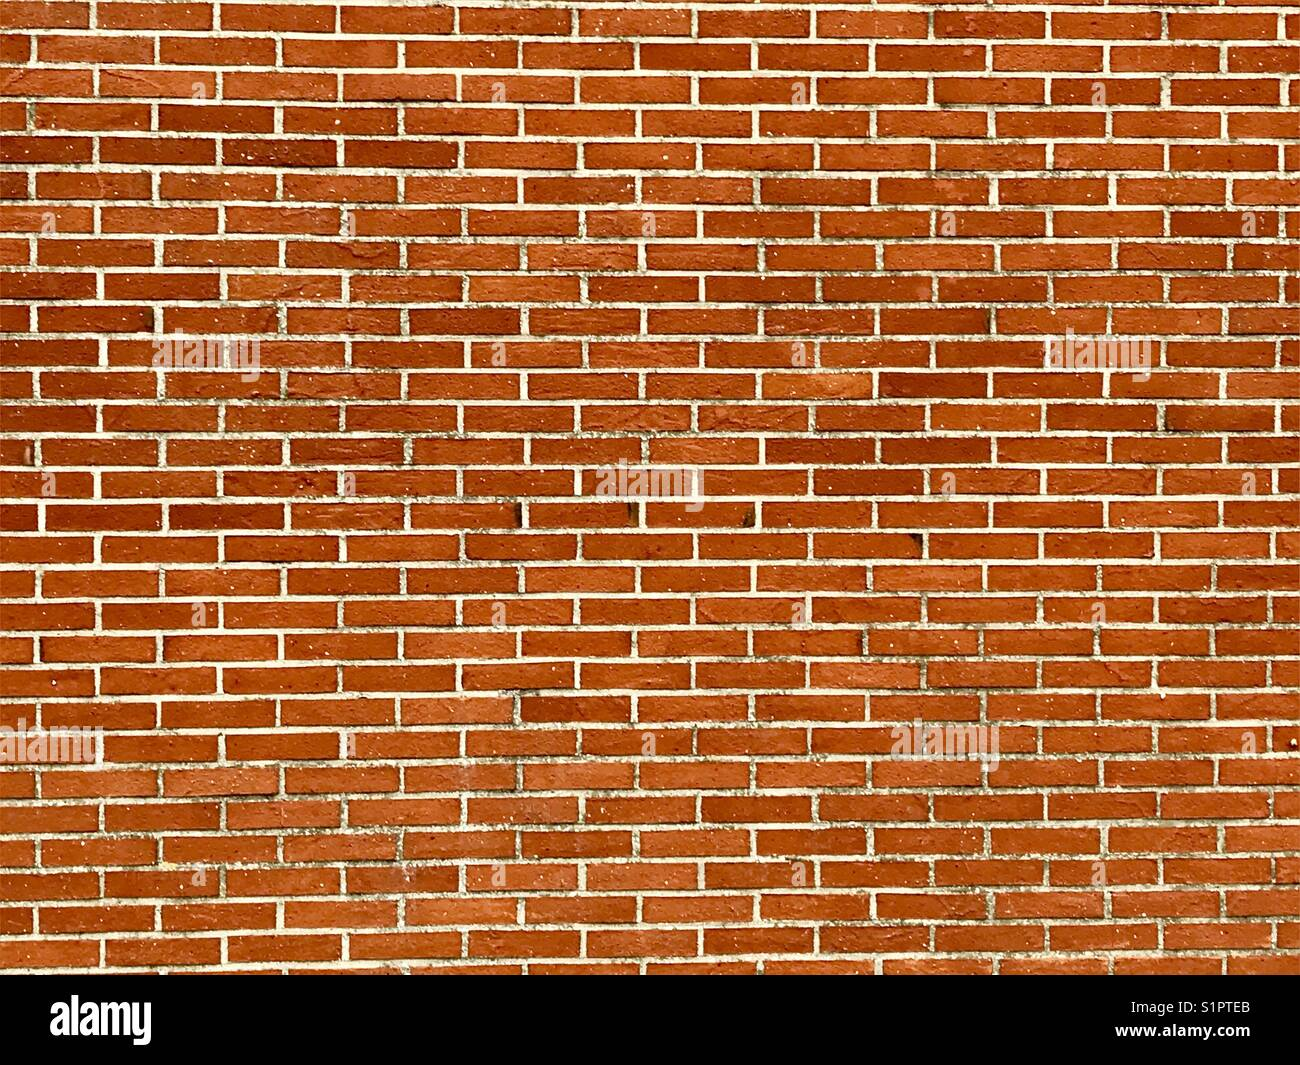 Wall of the red bricks as background - Stock Image